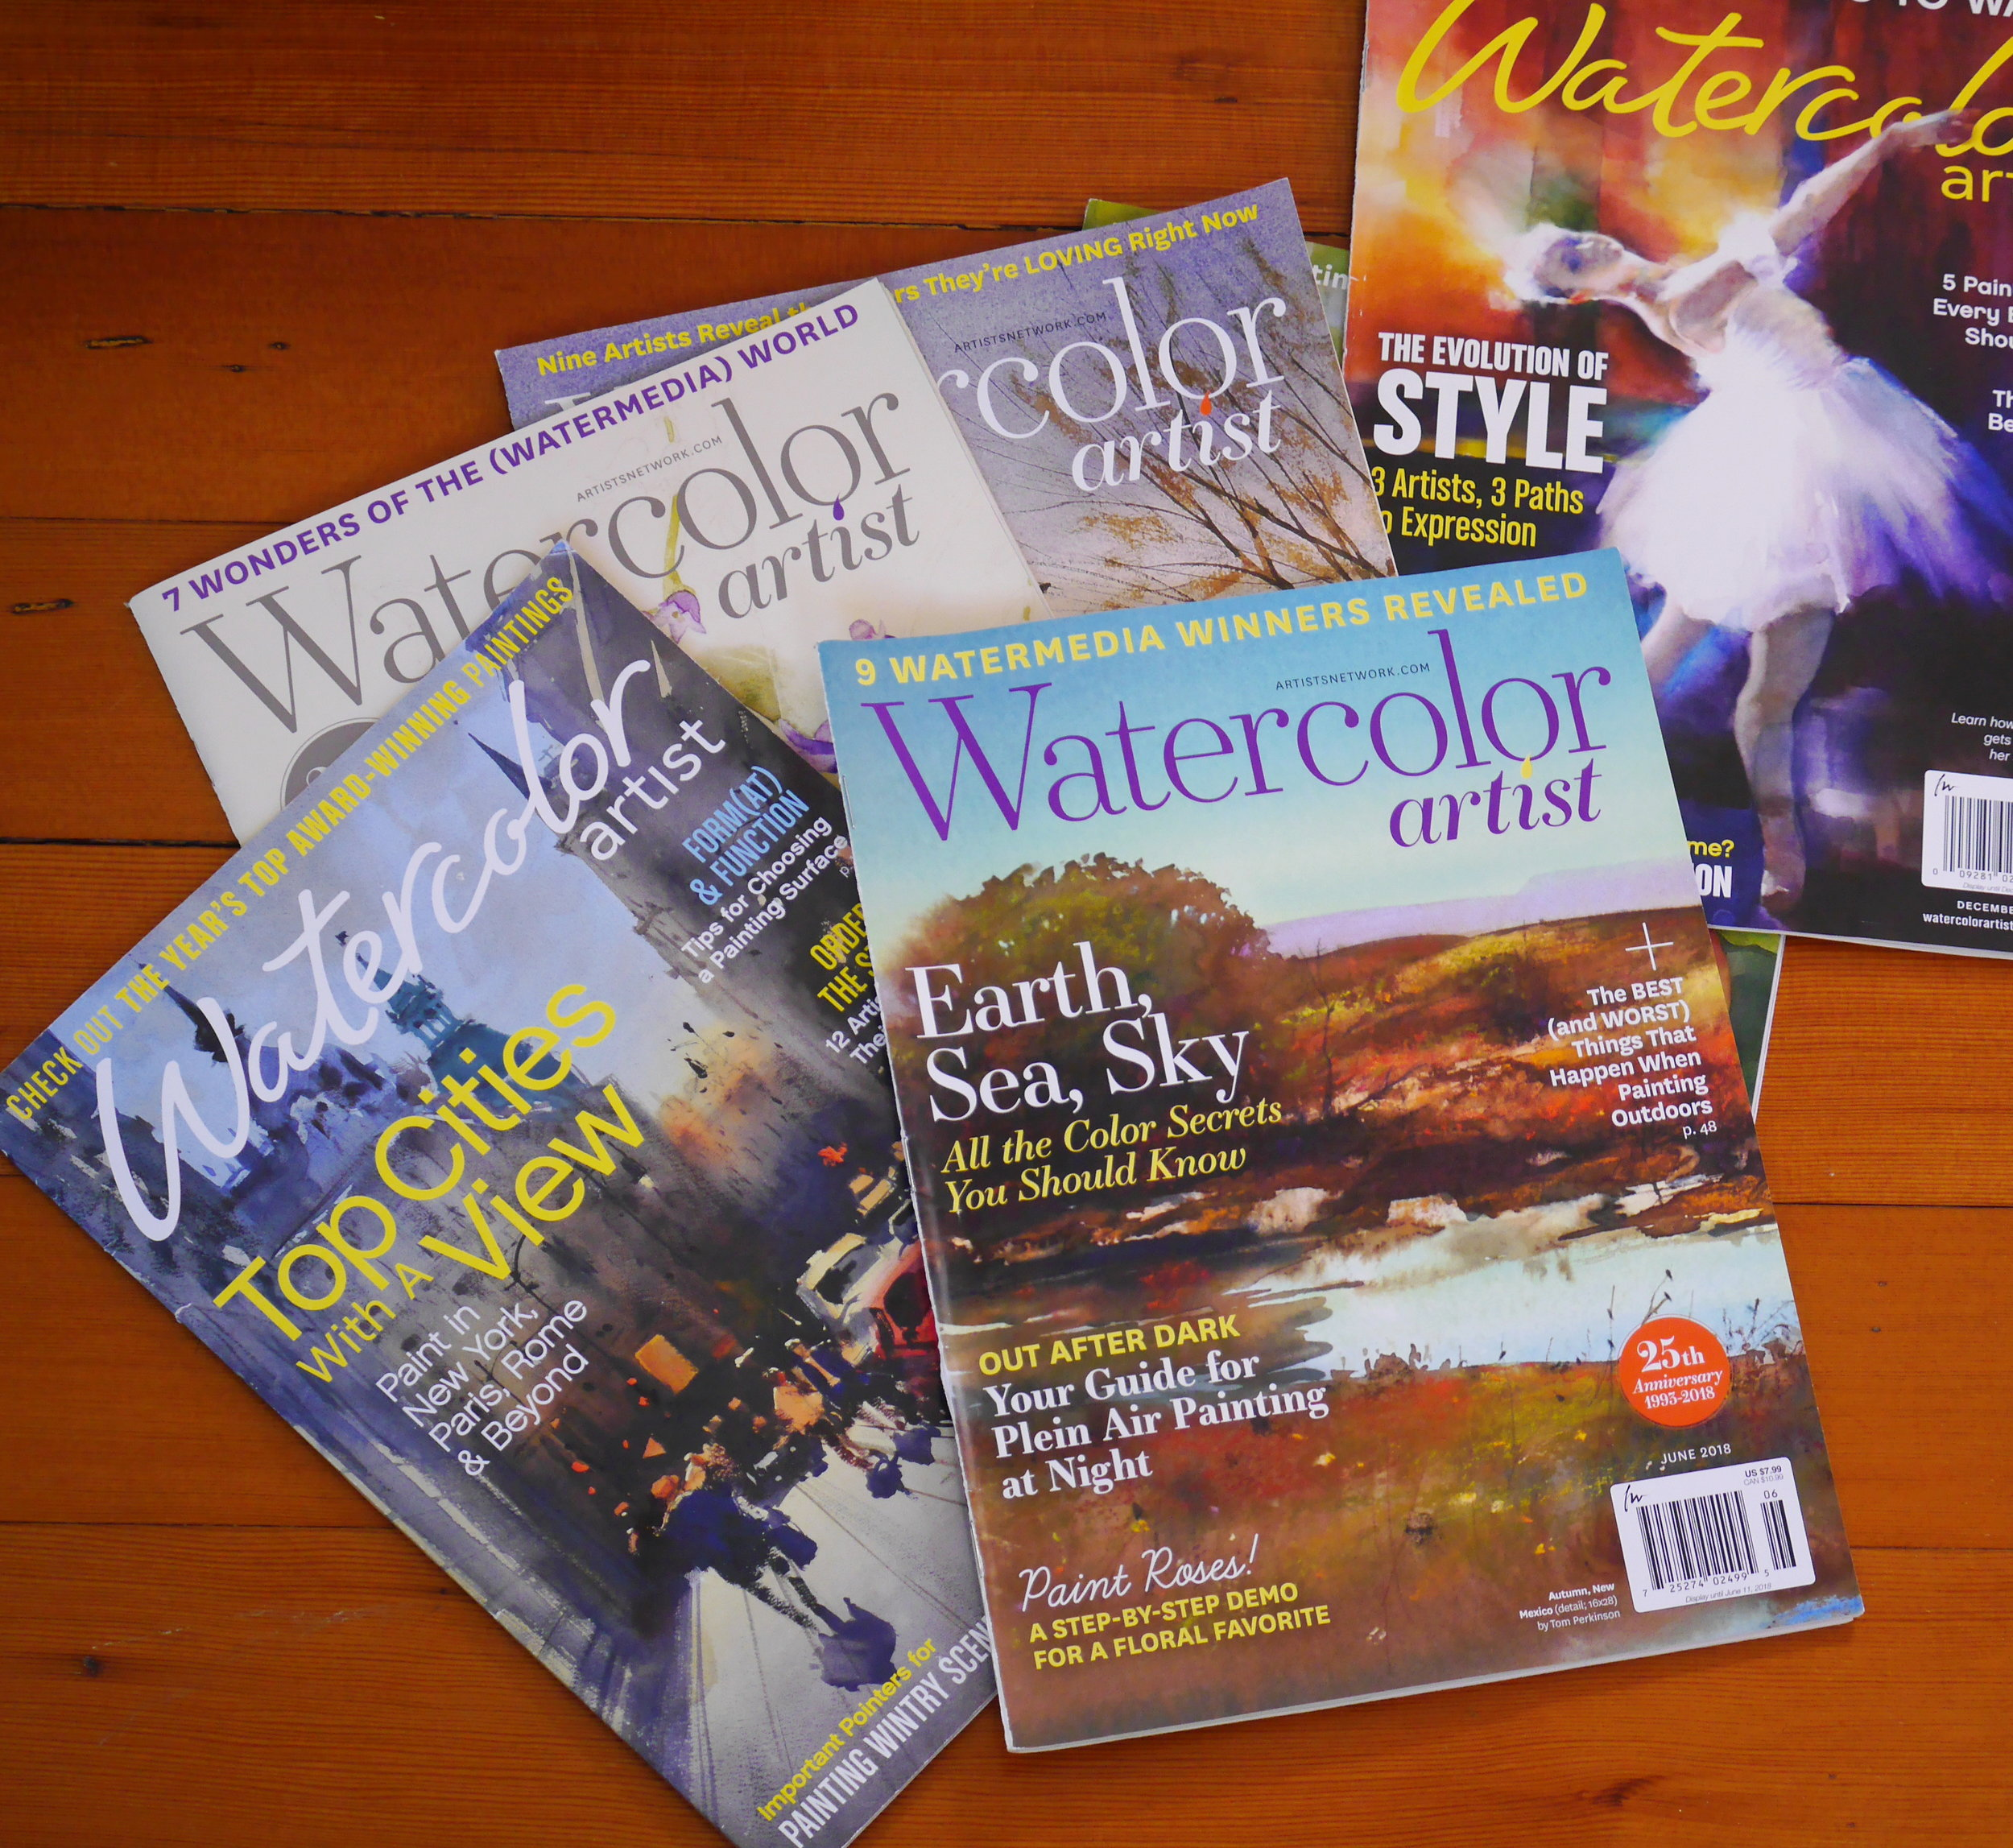 3. Watercolor artist magazine  - US based magazine  - 6 issues per year  - watercolor artist interview  - watercolor tips and tricks  - watercolor workshop schedule  - website: http://subscriptions.watercolorartistmagazine.com/